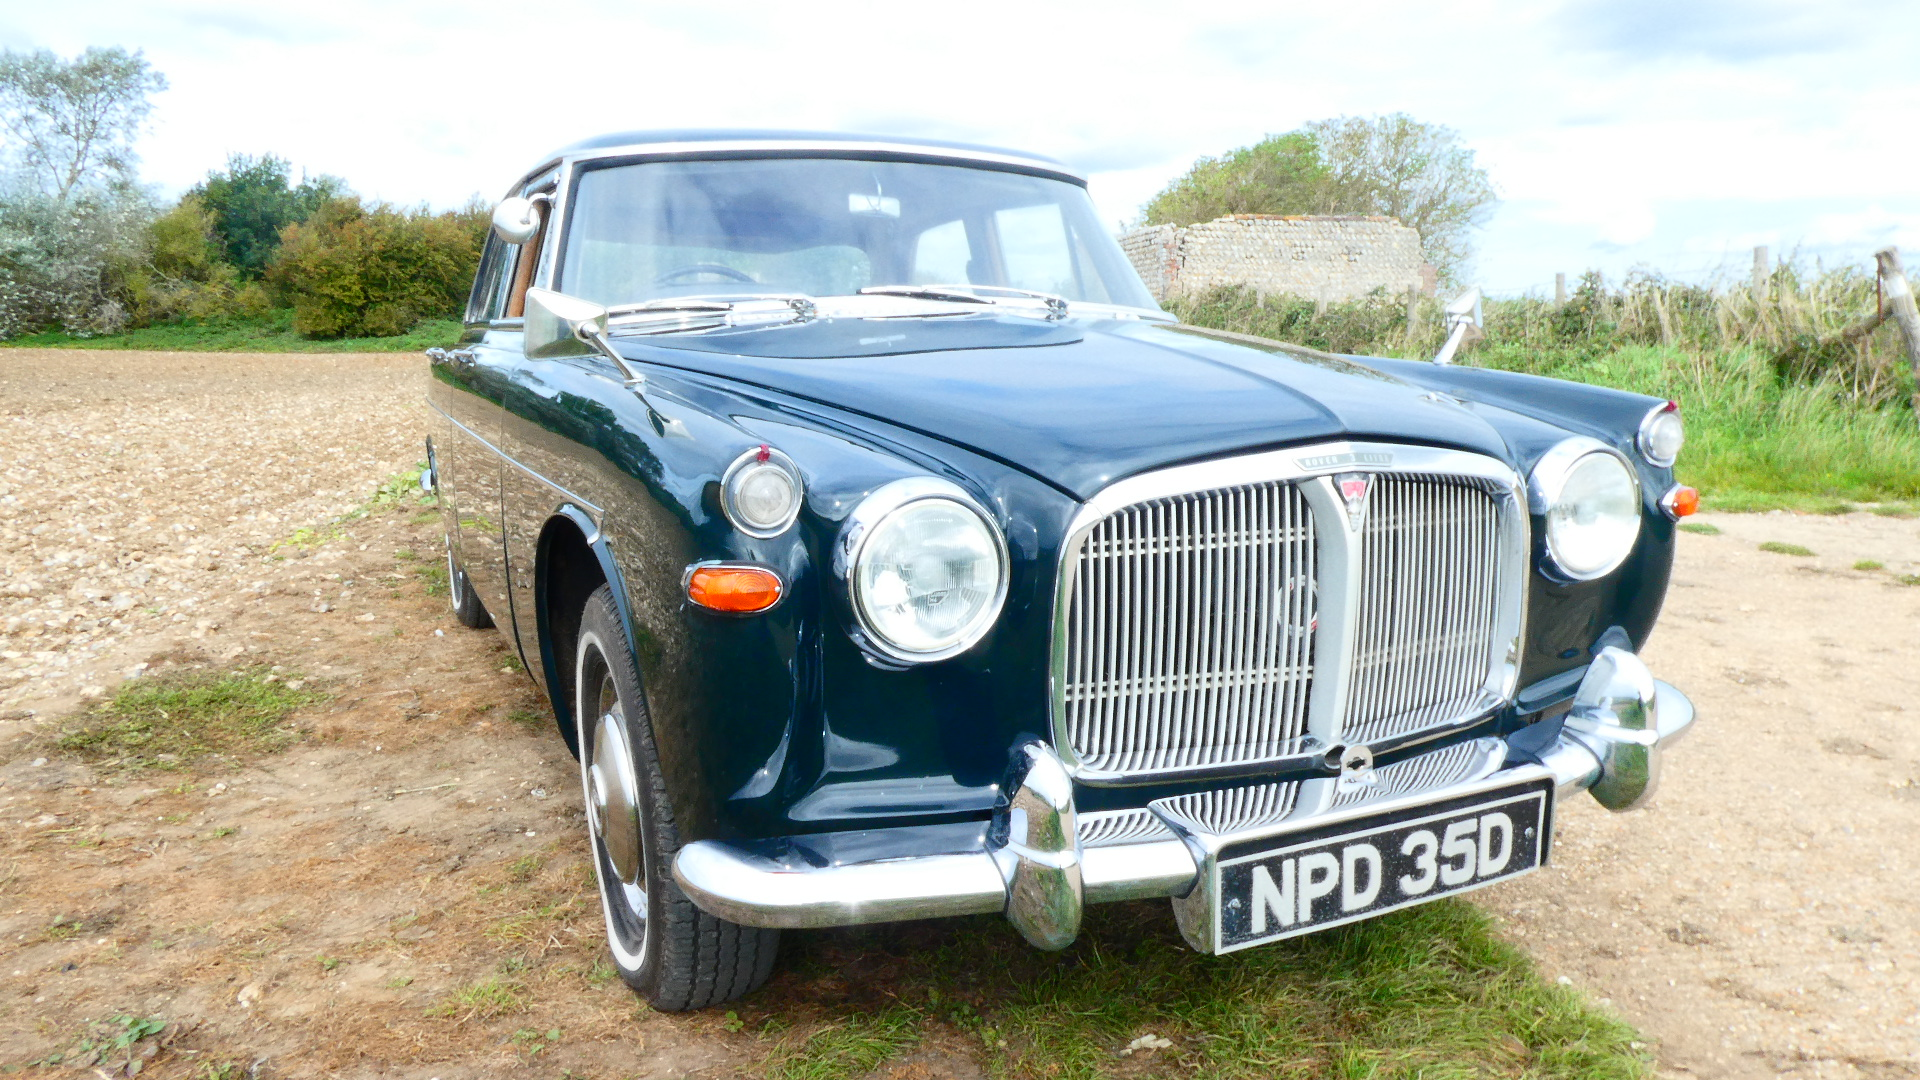 1964 Rover P5 Saloon for sale